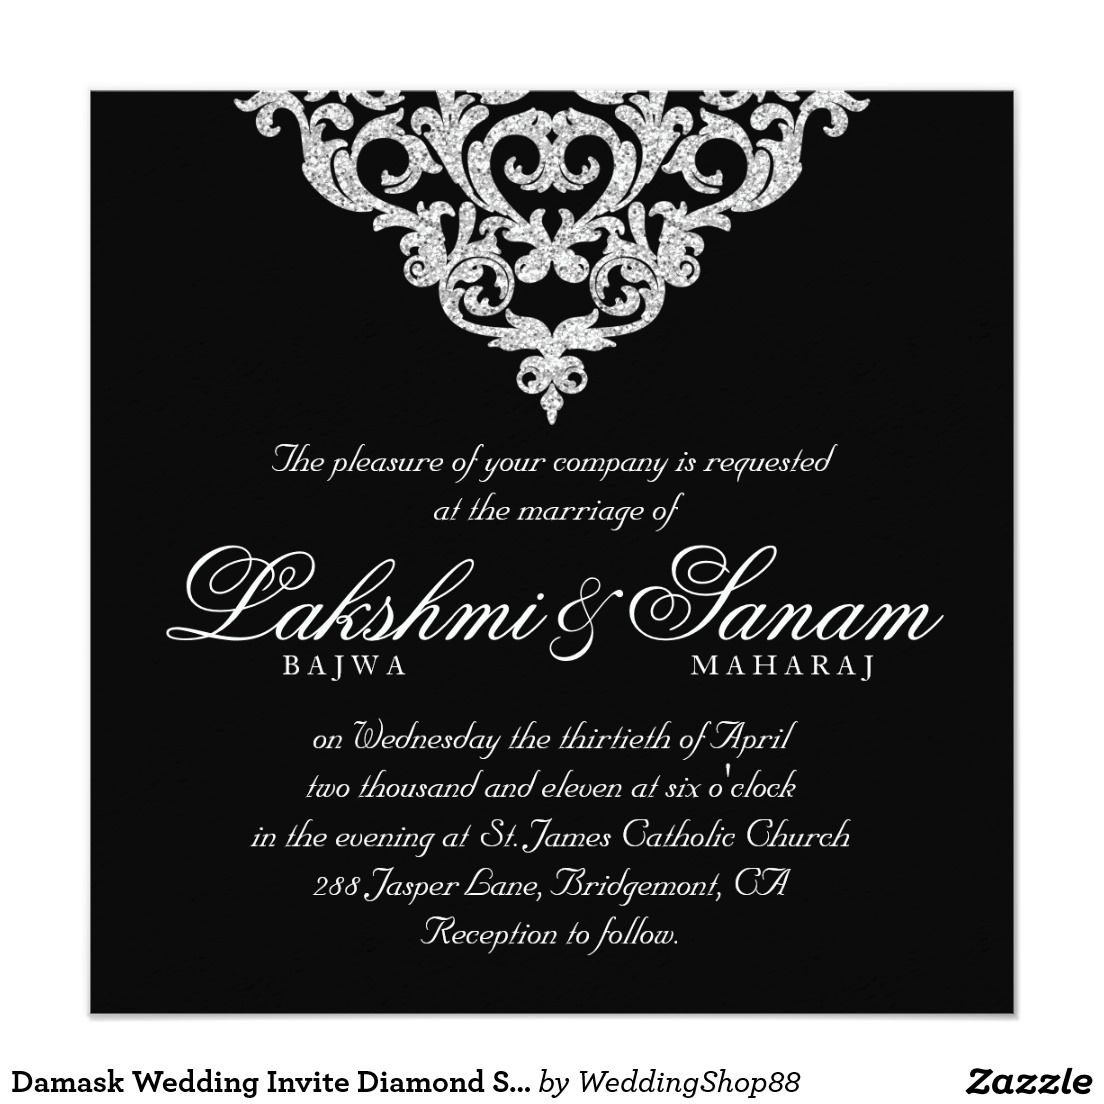 damask wedding invite diamond sparkle silver lace damask wedding